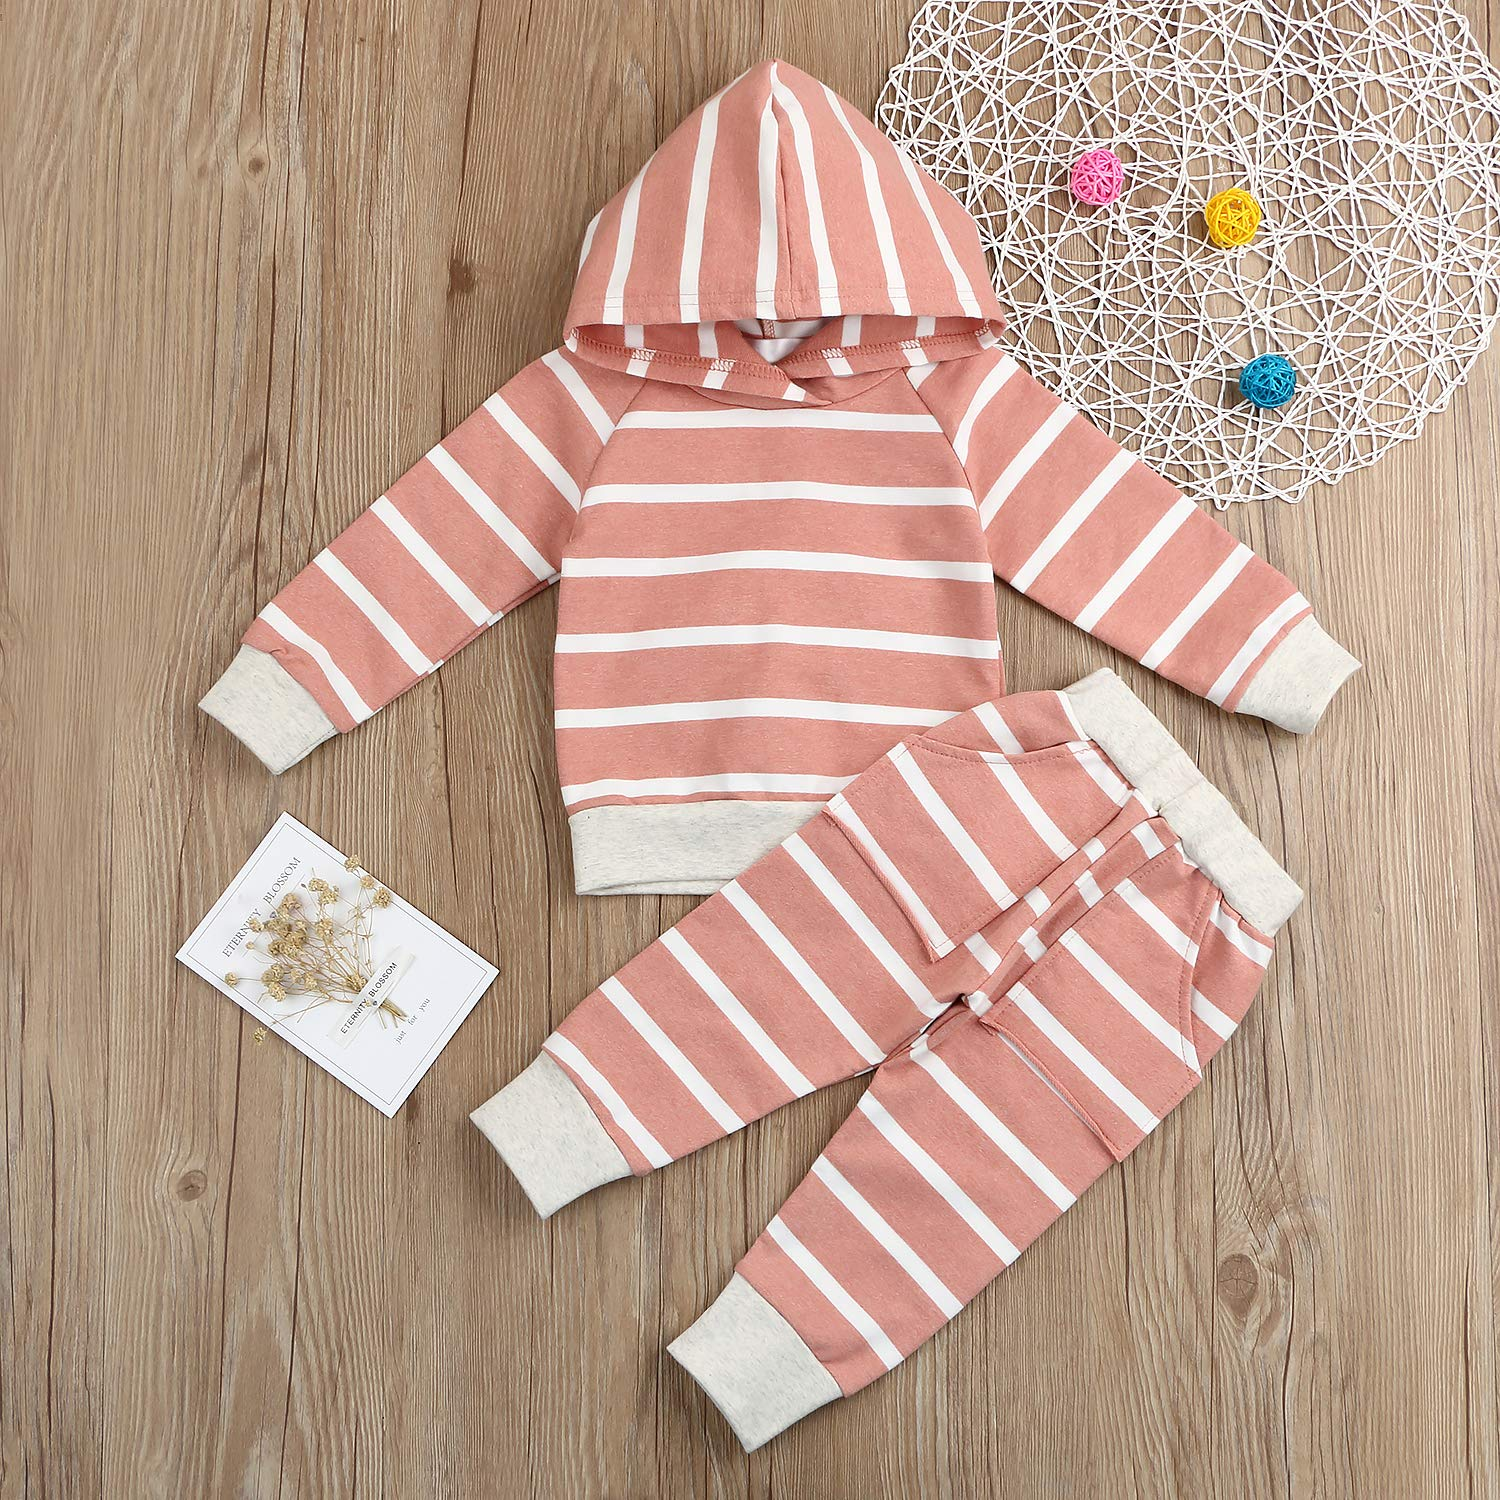 b3746deca Amazon.com: Baby Girls Boys Winter Clothes Set Long Sleeve Striped Hoodie  Sweatshirt Pants Outfit Sets for Newborn Infant Toddler Babies: Clothing